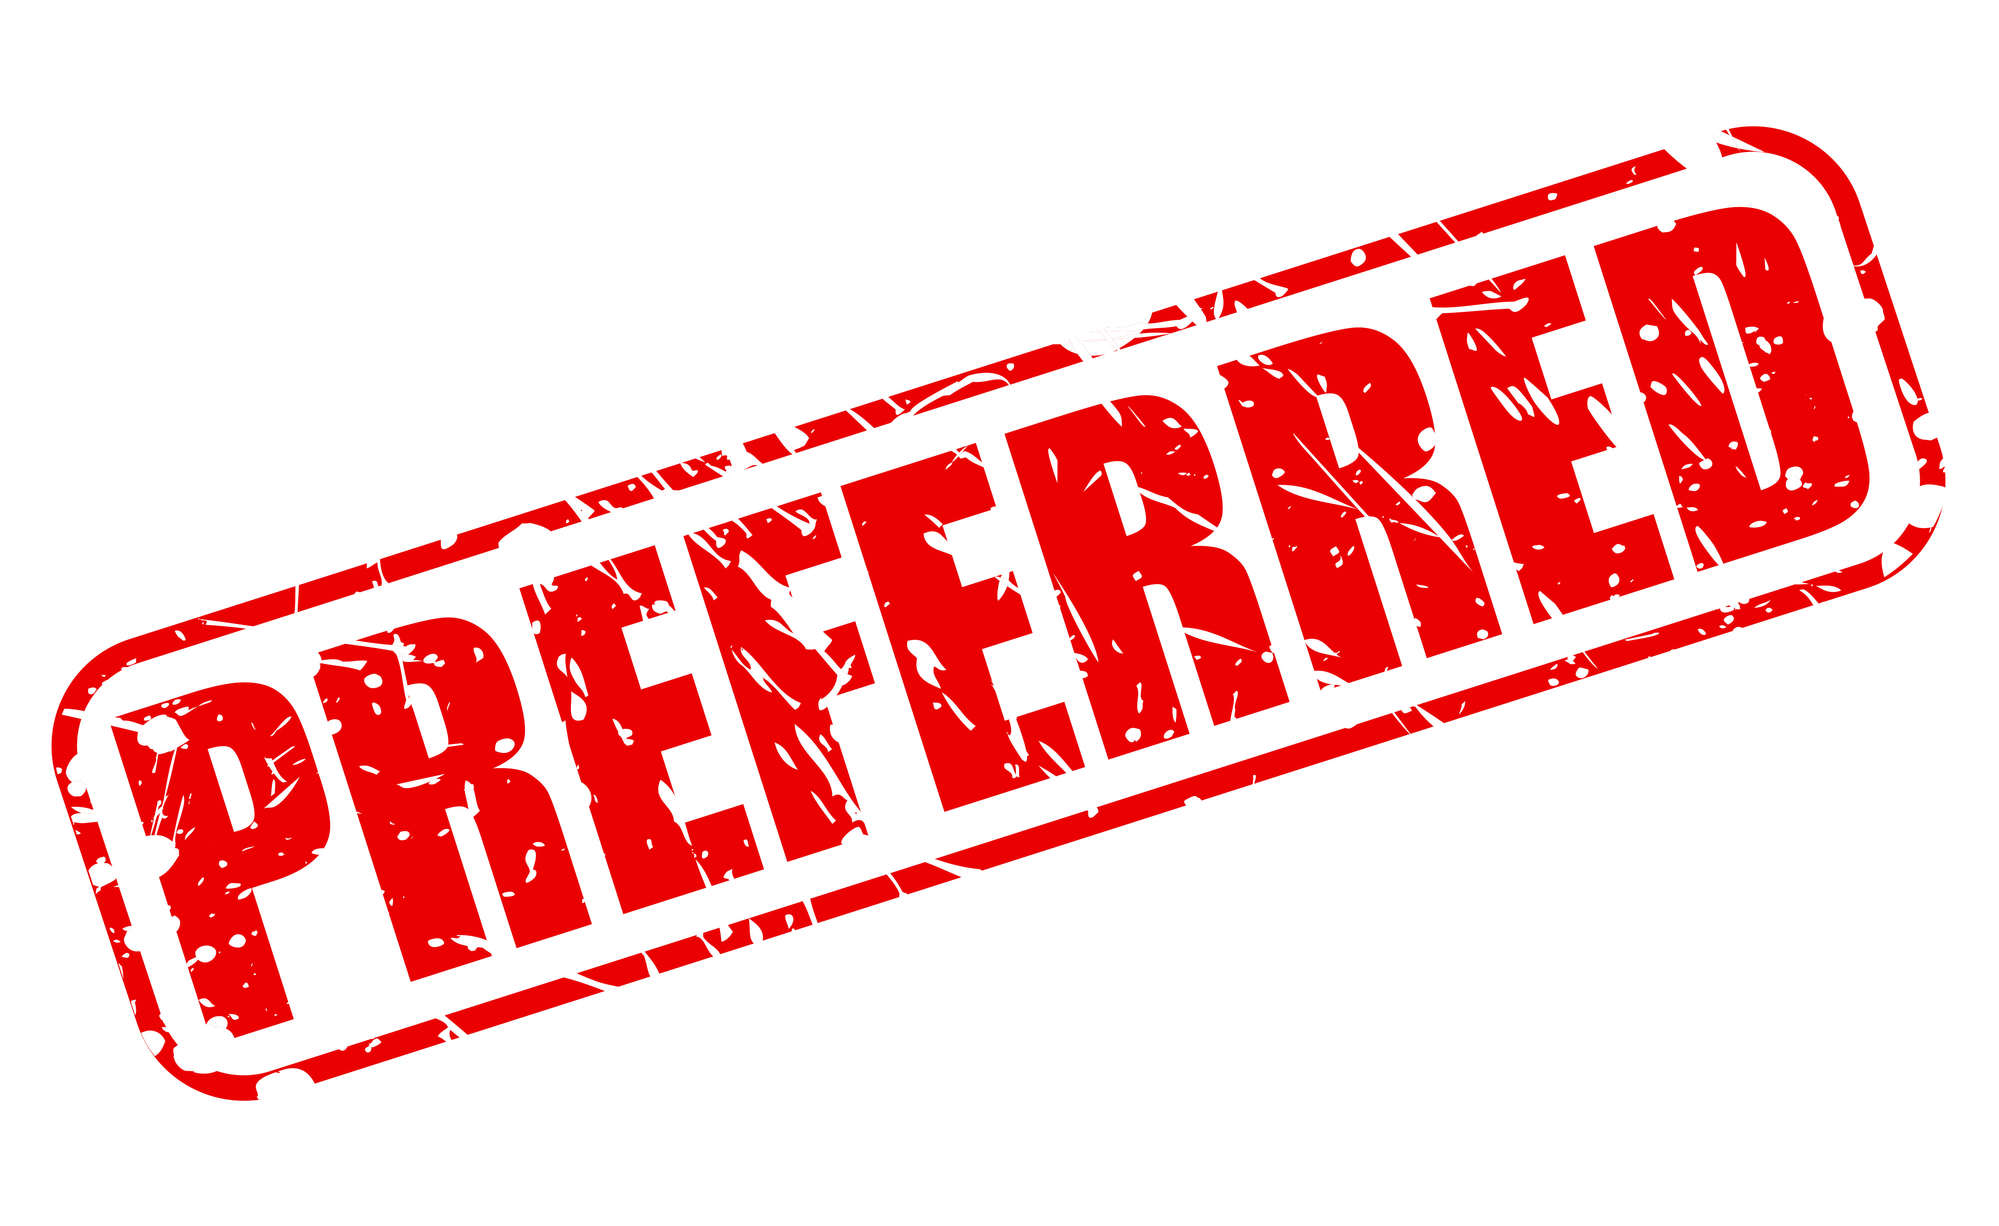 Preferred In Red Stamp For Advantages Of Building An Approved Vendor List Blog